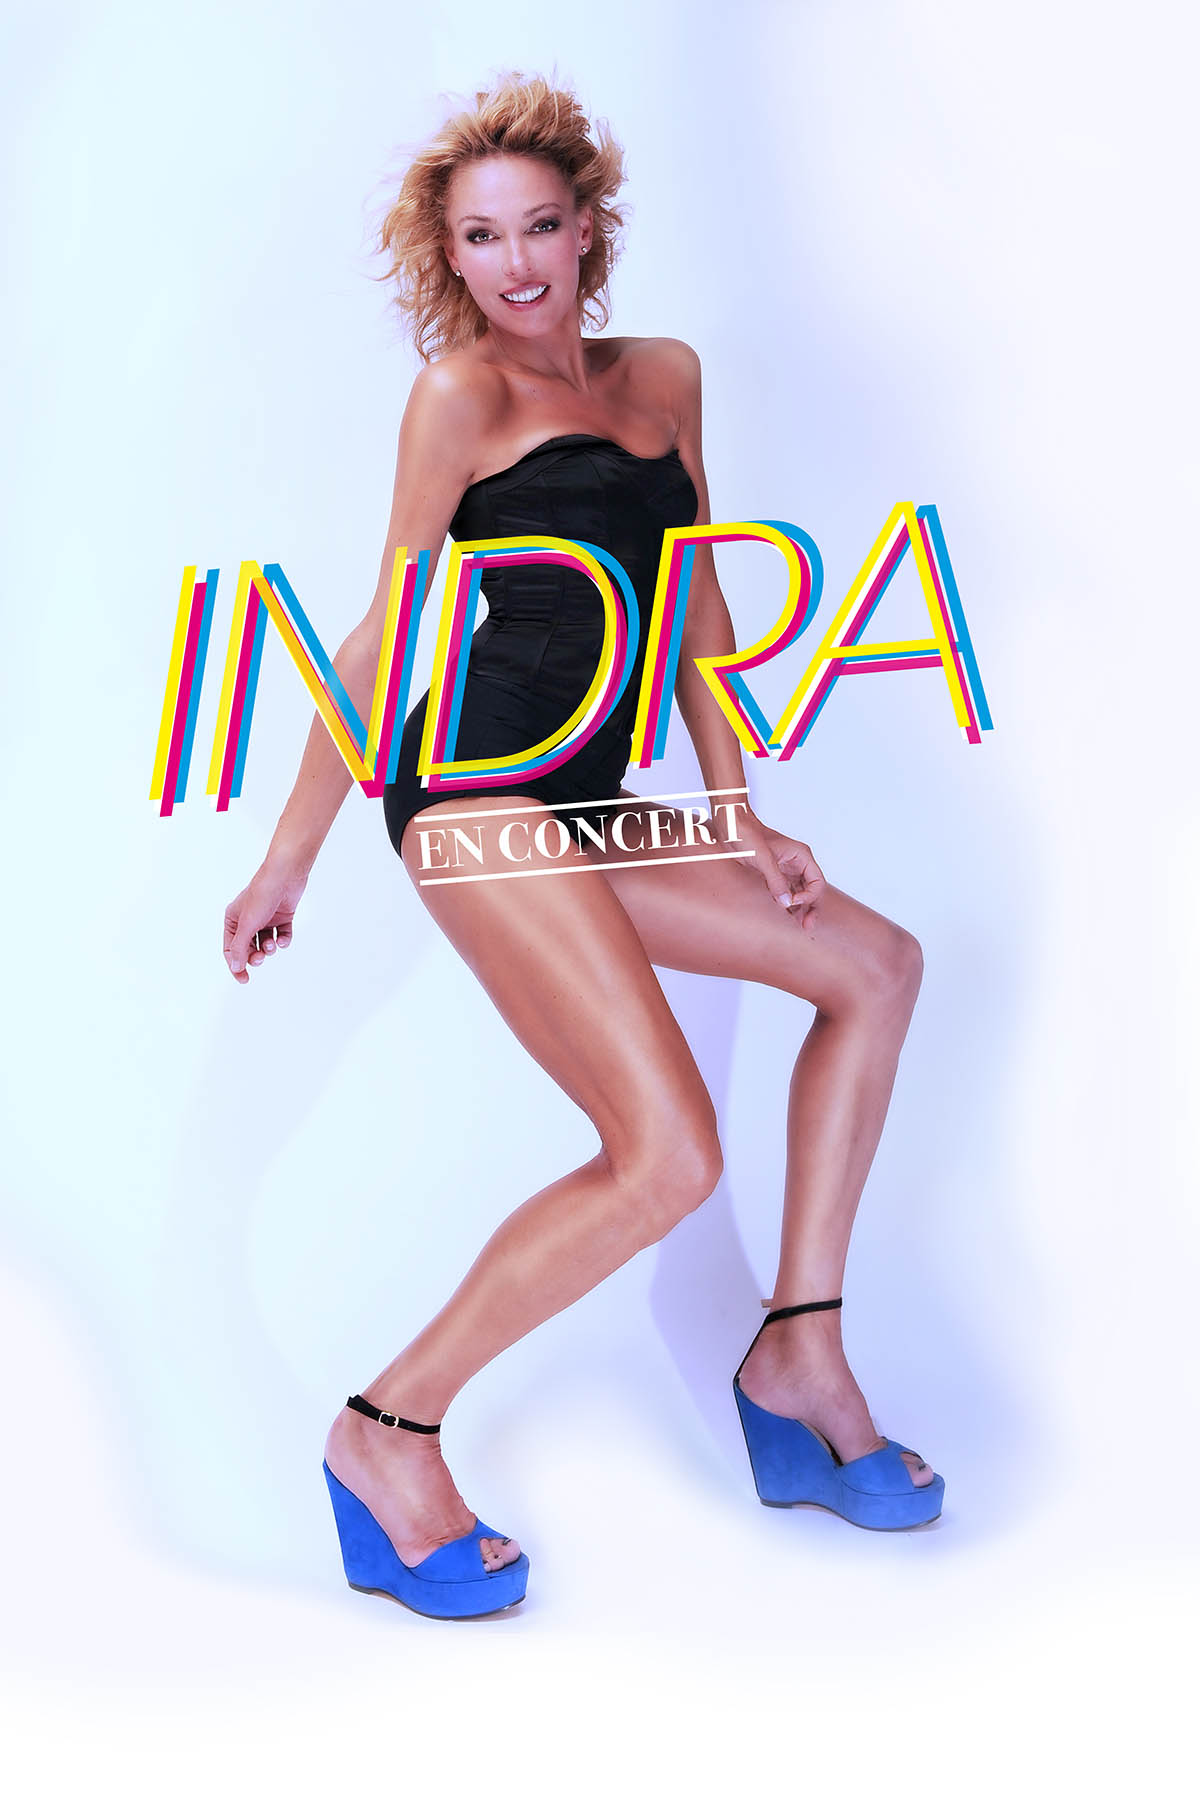 Indra par laurent Scavone / Production Sakkamoto